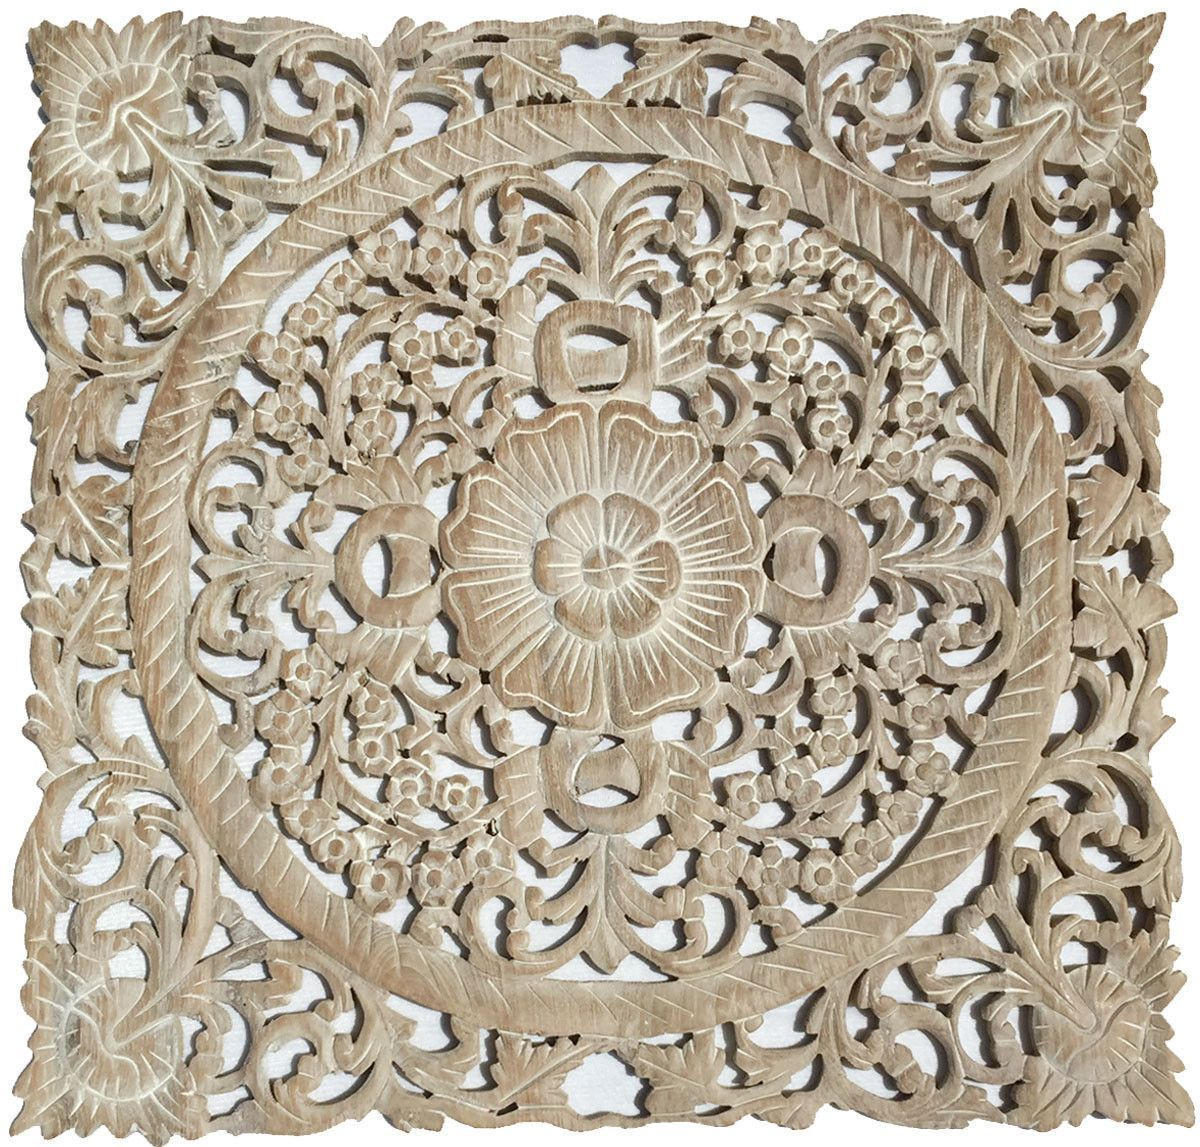 Wood Carved Wall Decor Clearance Oriental Hand Carved Wood Wall Plaques Foral Wood Wall